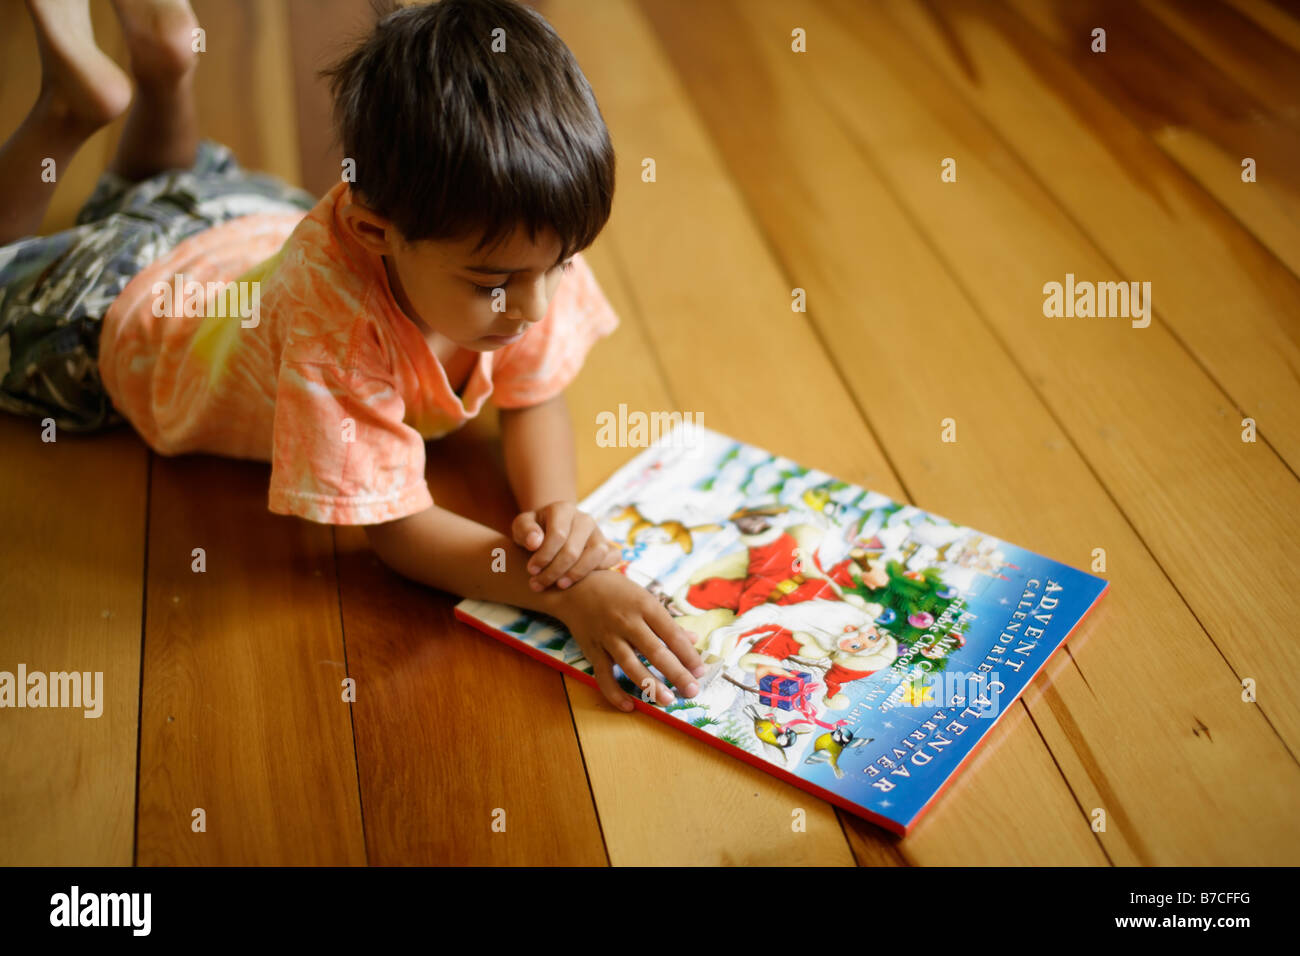 Six year old boy lies on floor and opens doors to advent calendar - Stock Image